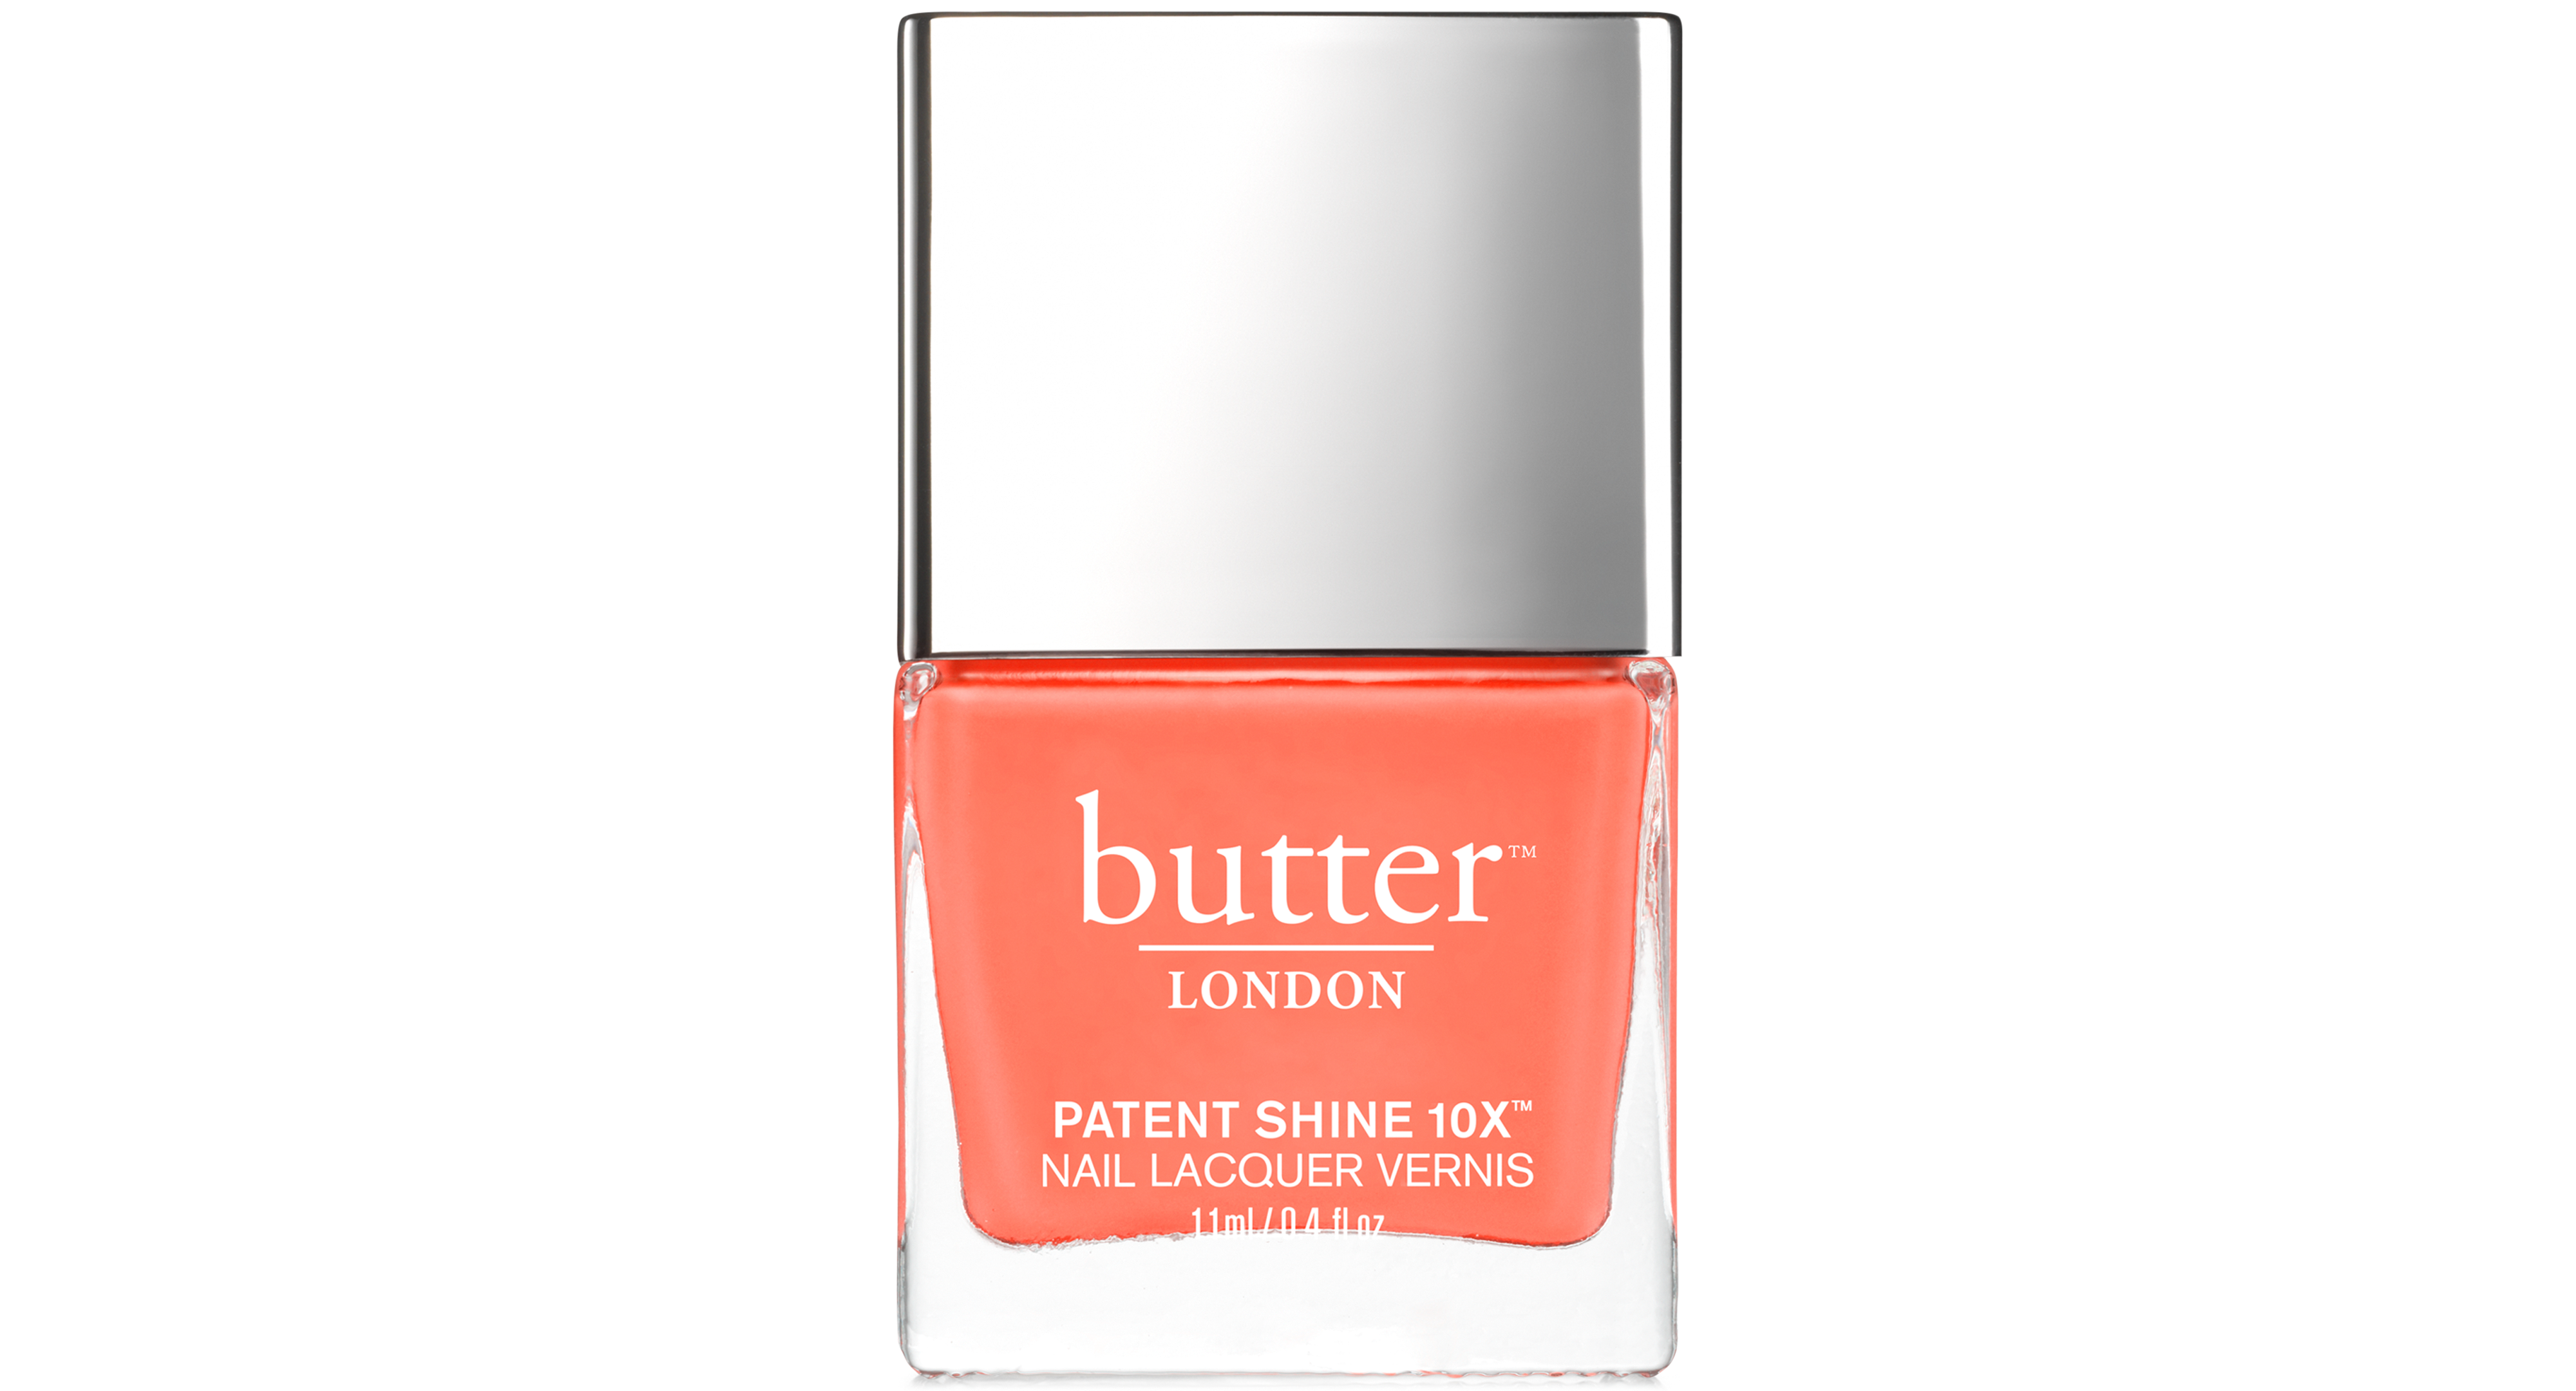 butter London Patent Shine 10X Nail Lacquer - Jolly Good